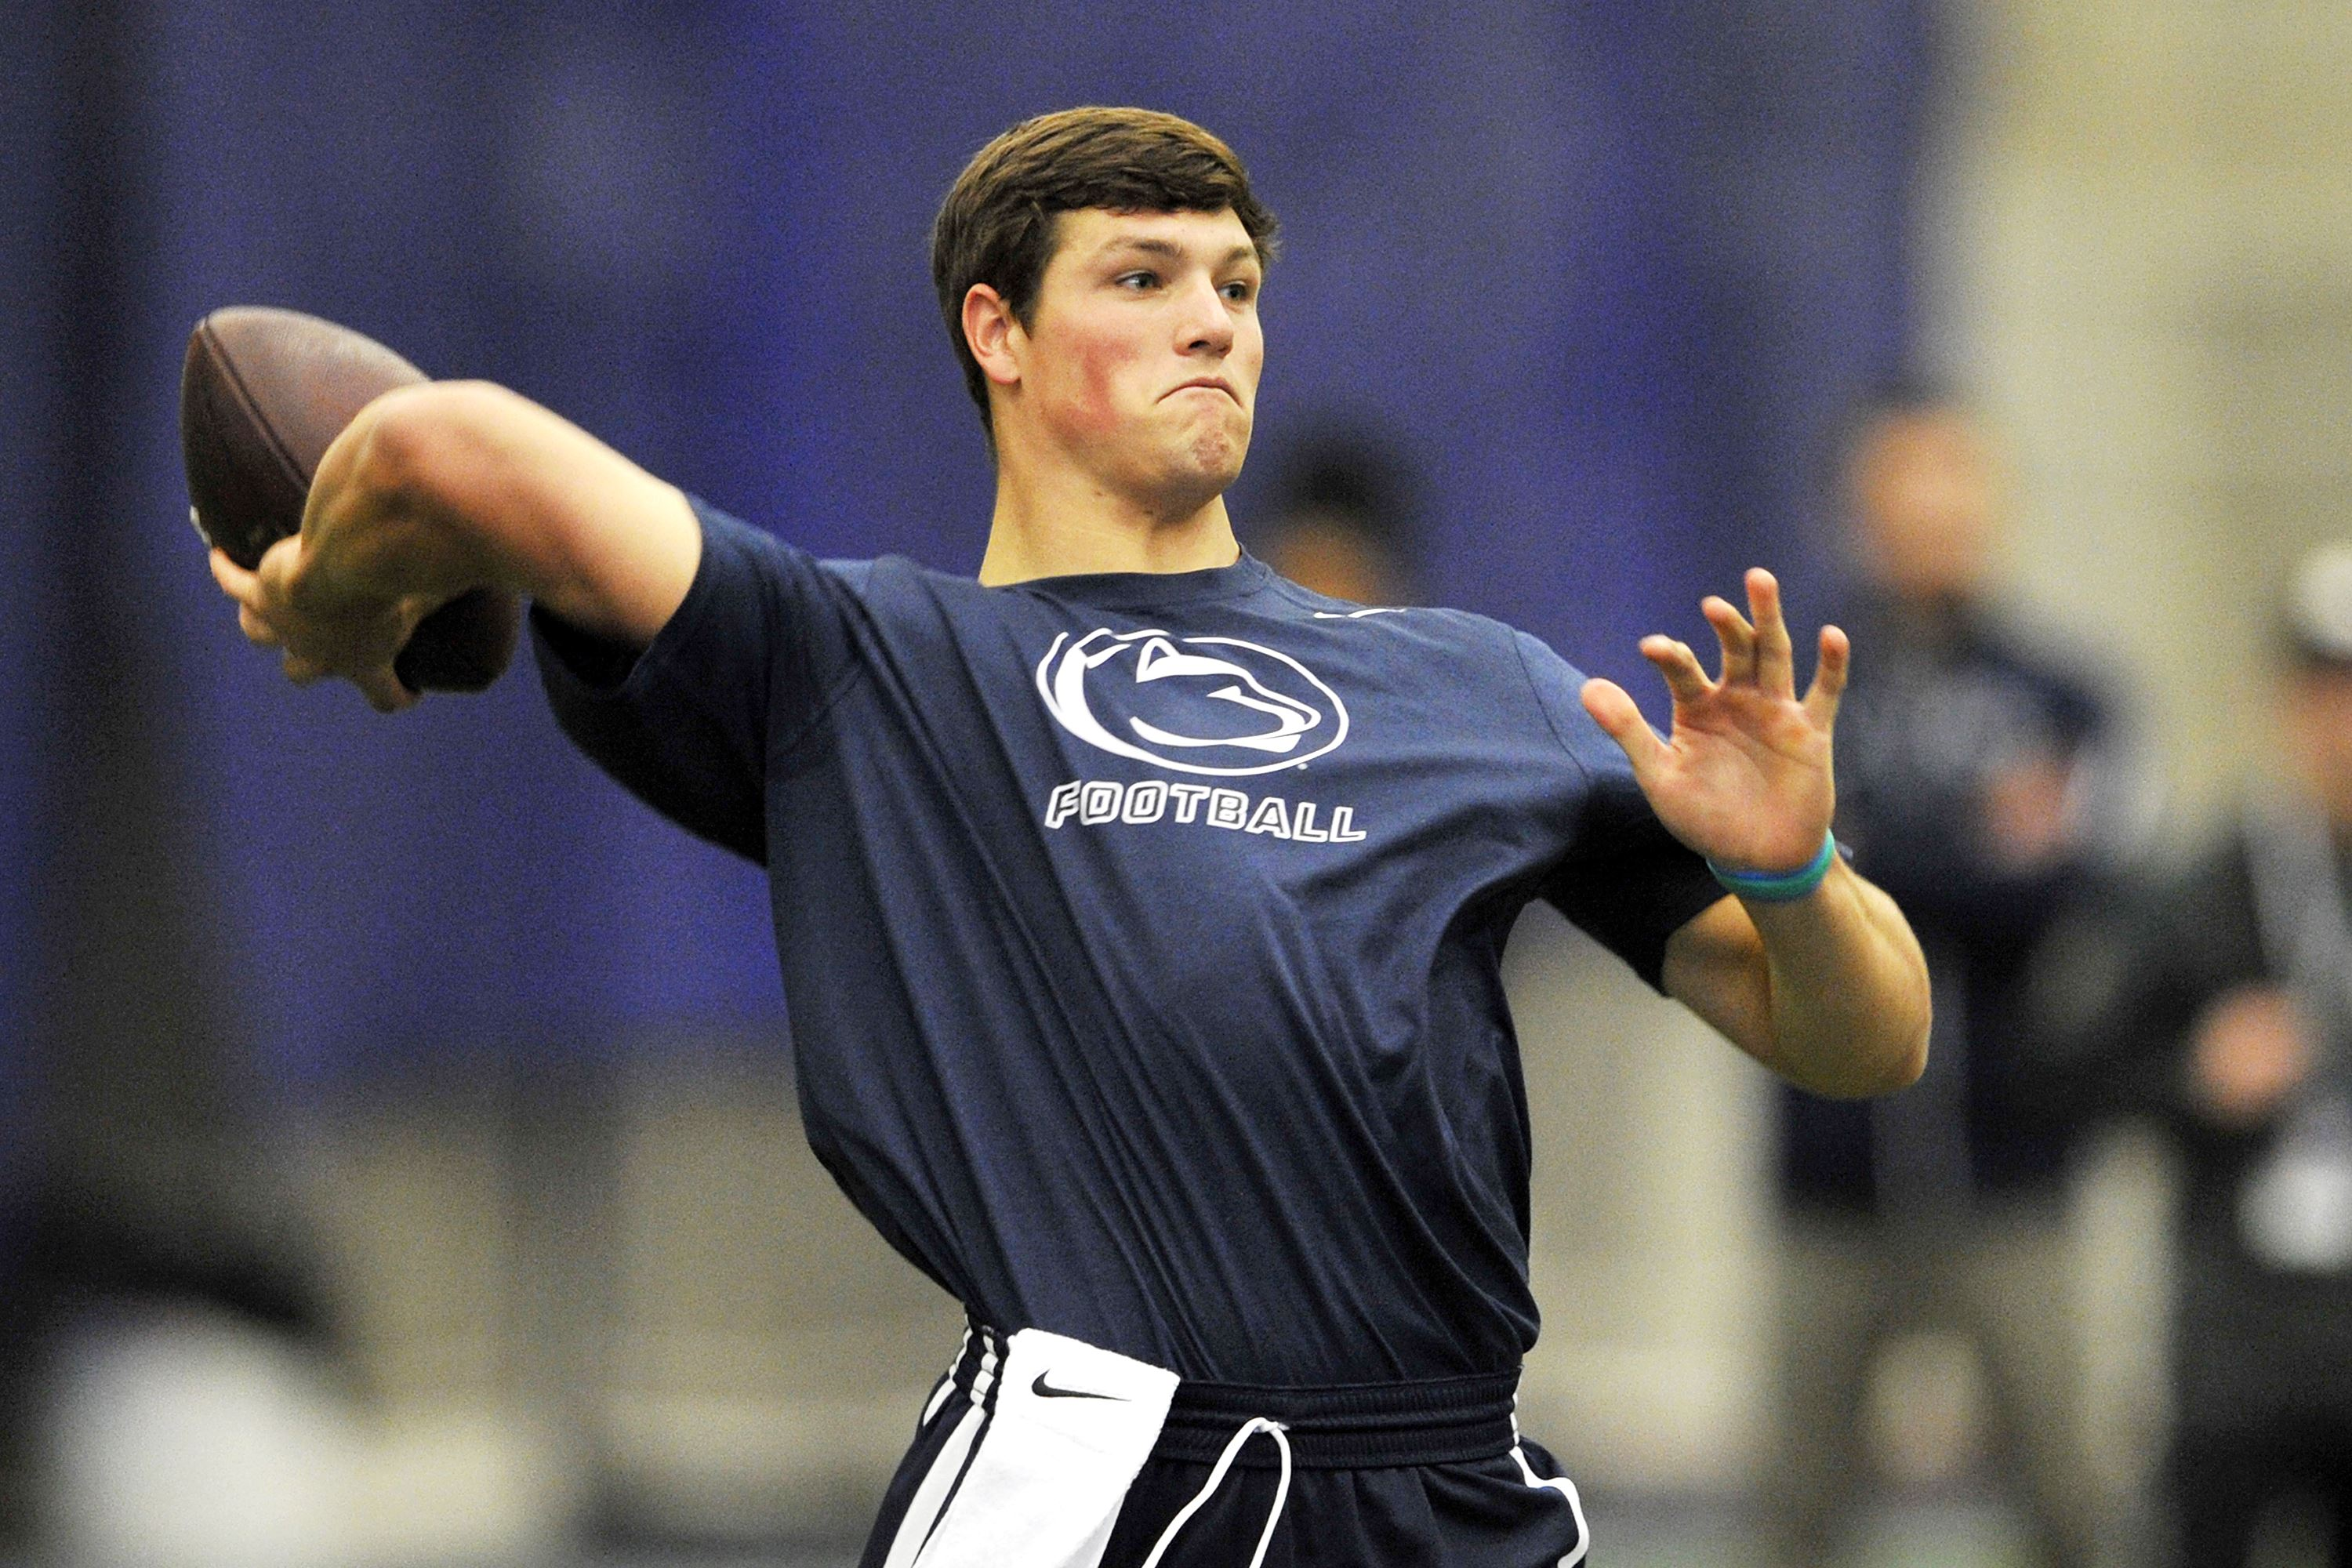 Christian Hackenberg Impresses at Penn State Pro Day